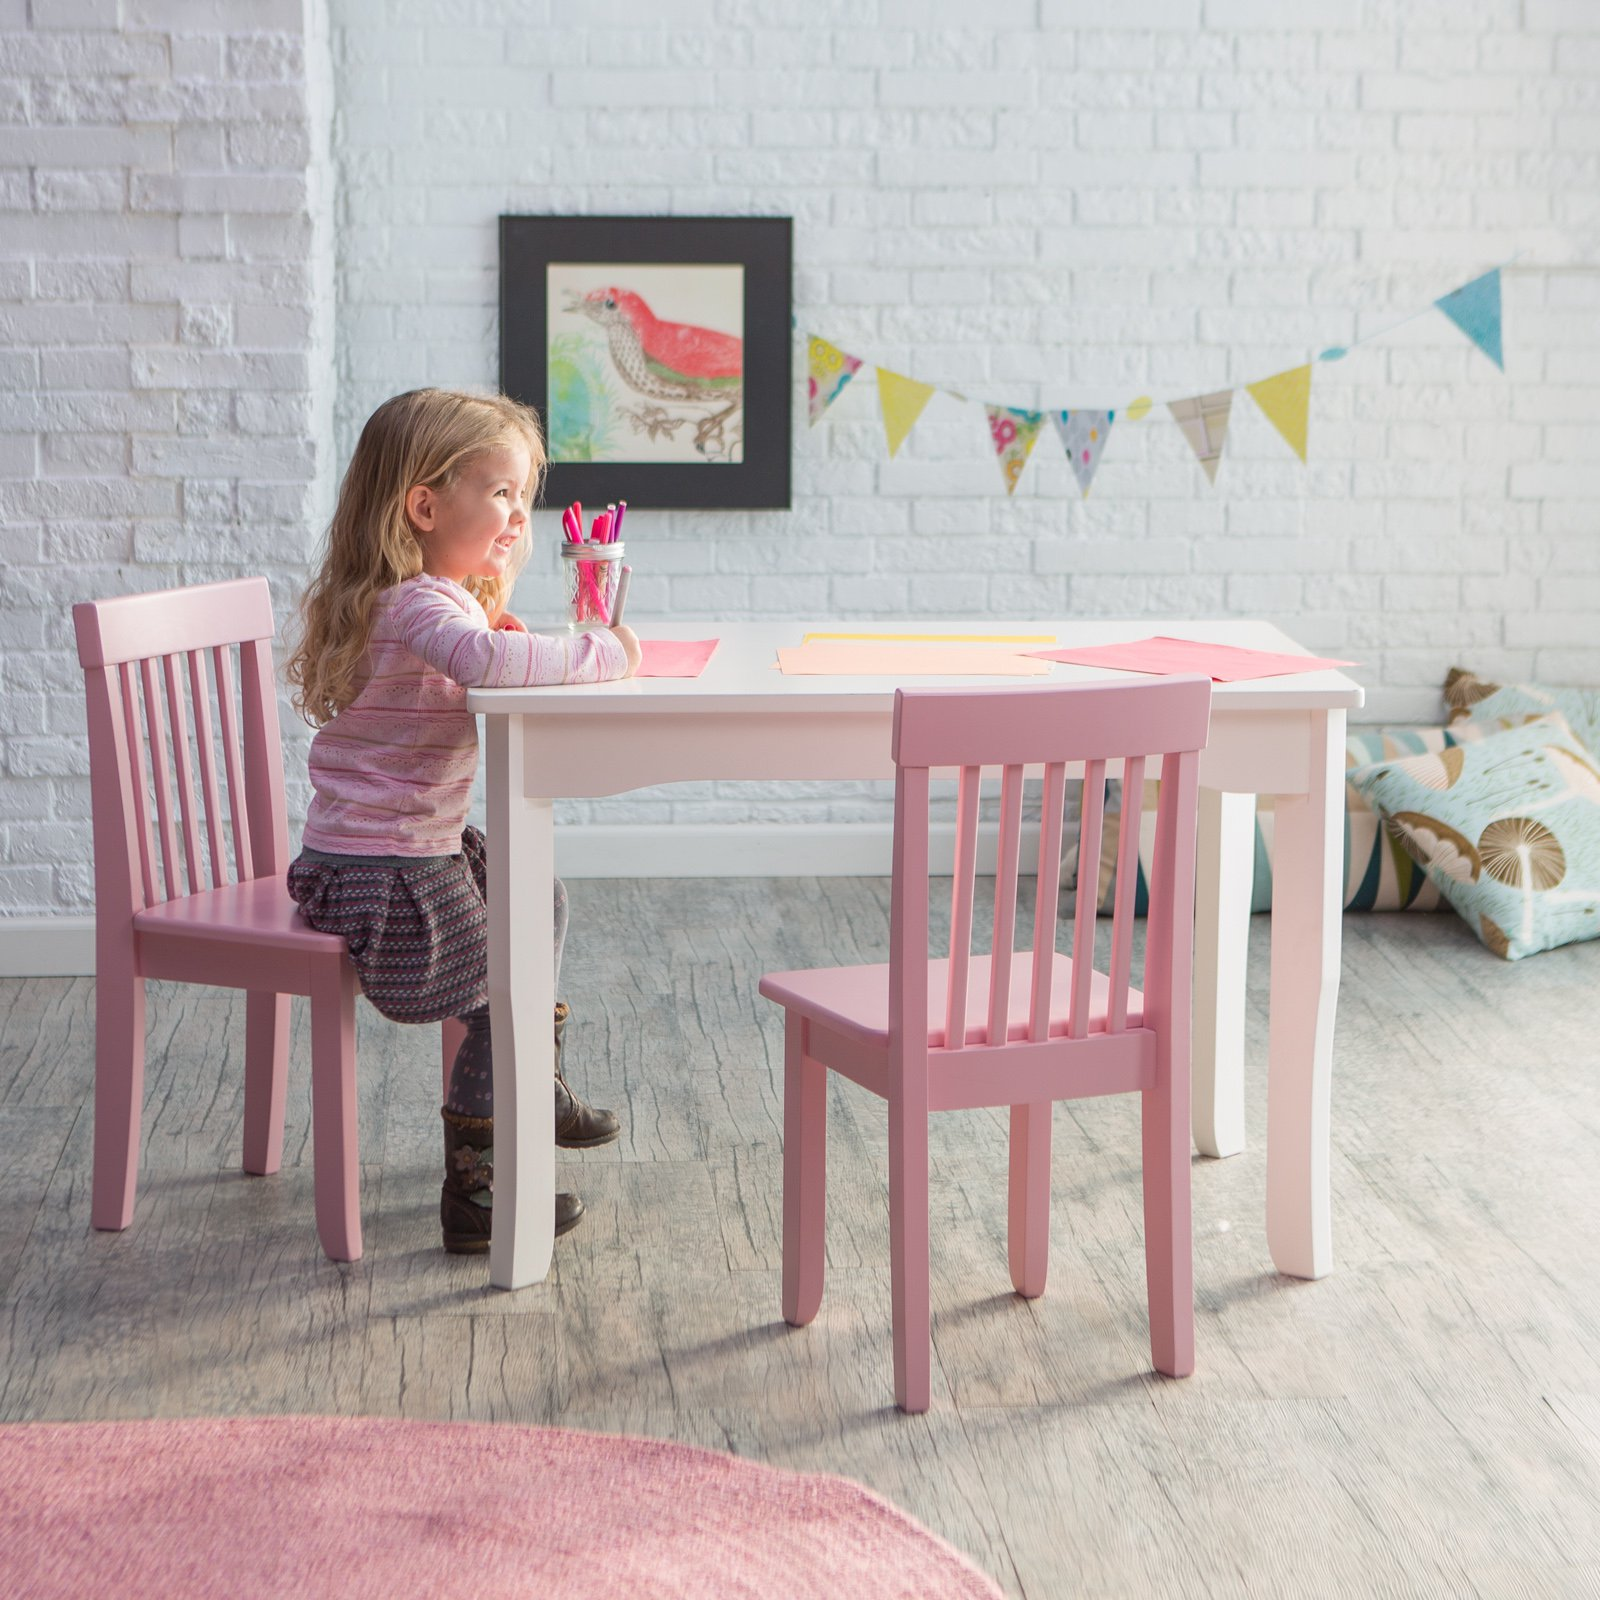 Stupendous Lipper Mystic Table And Chair Set Pink Short Links Chair Design For Home Short Linksinfo